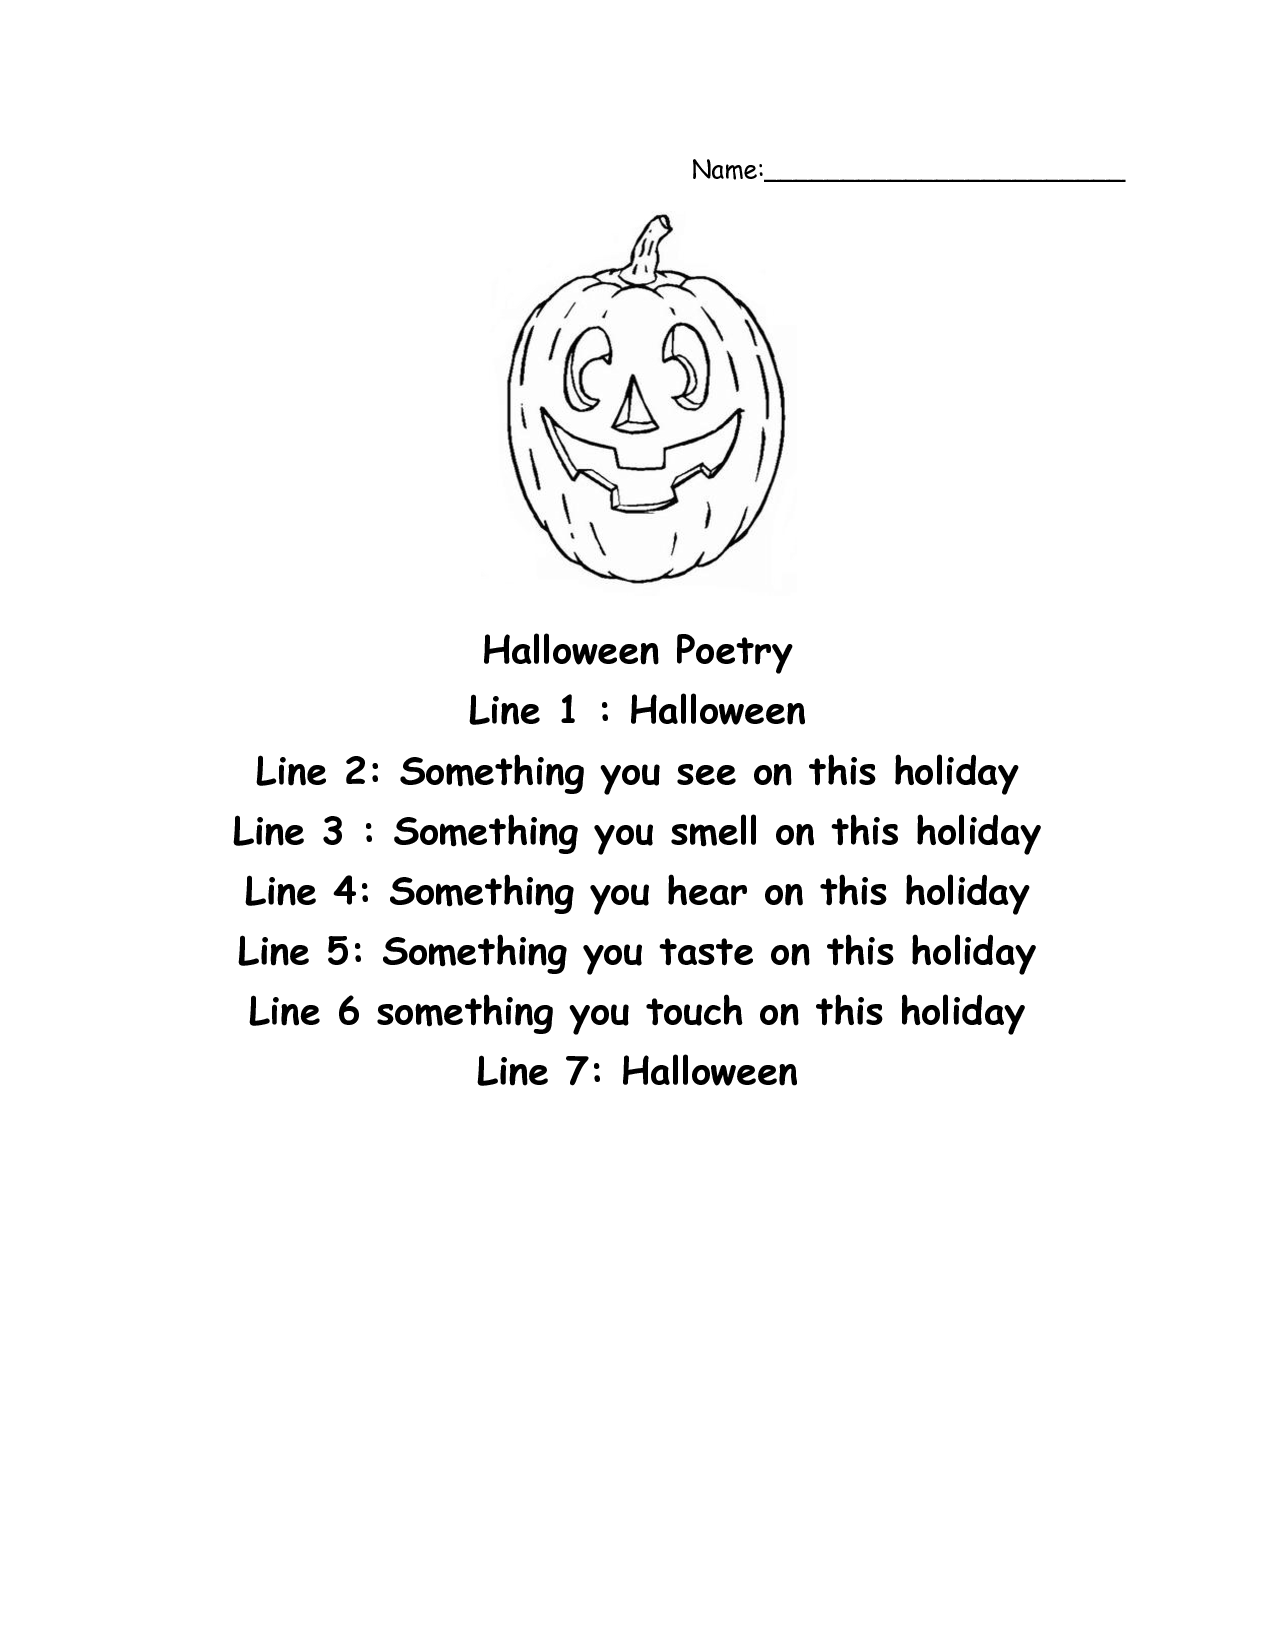 send poetrypasta your halloween or scary poems! – poetrypasta